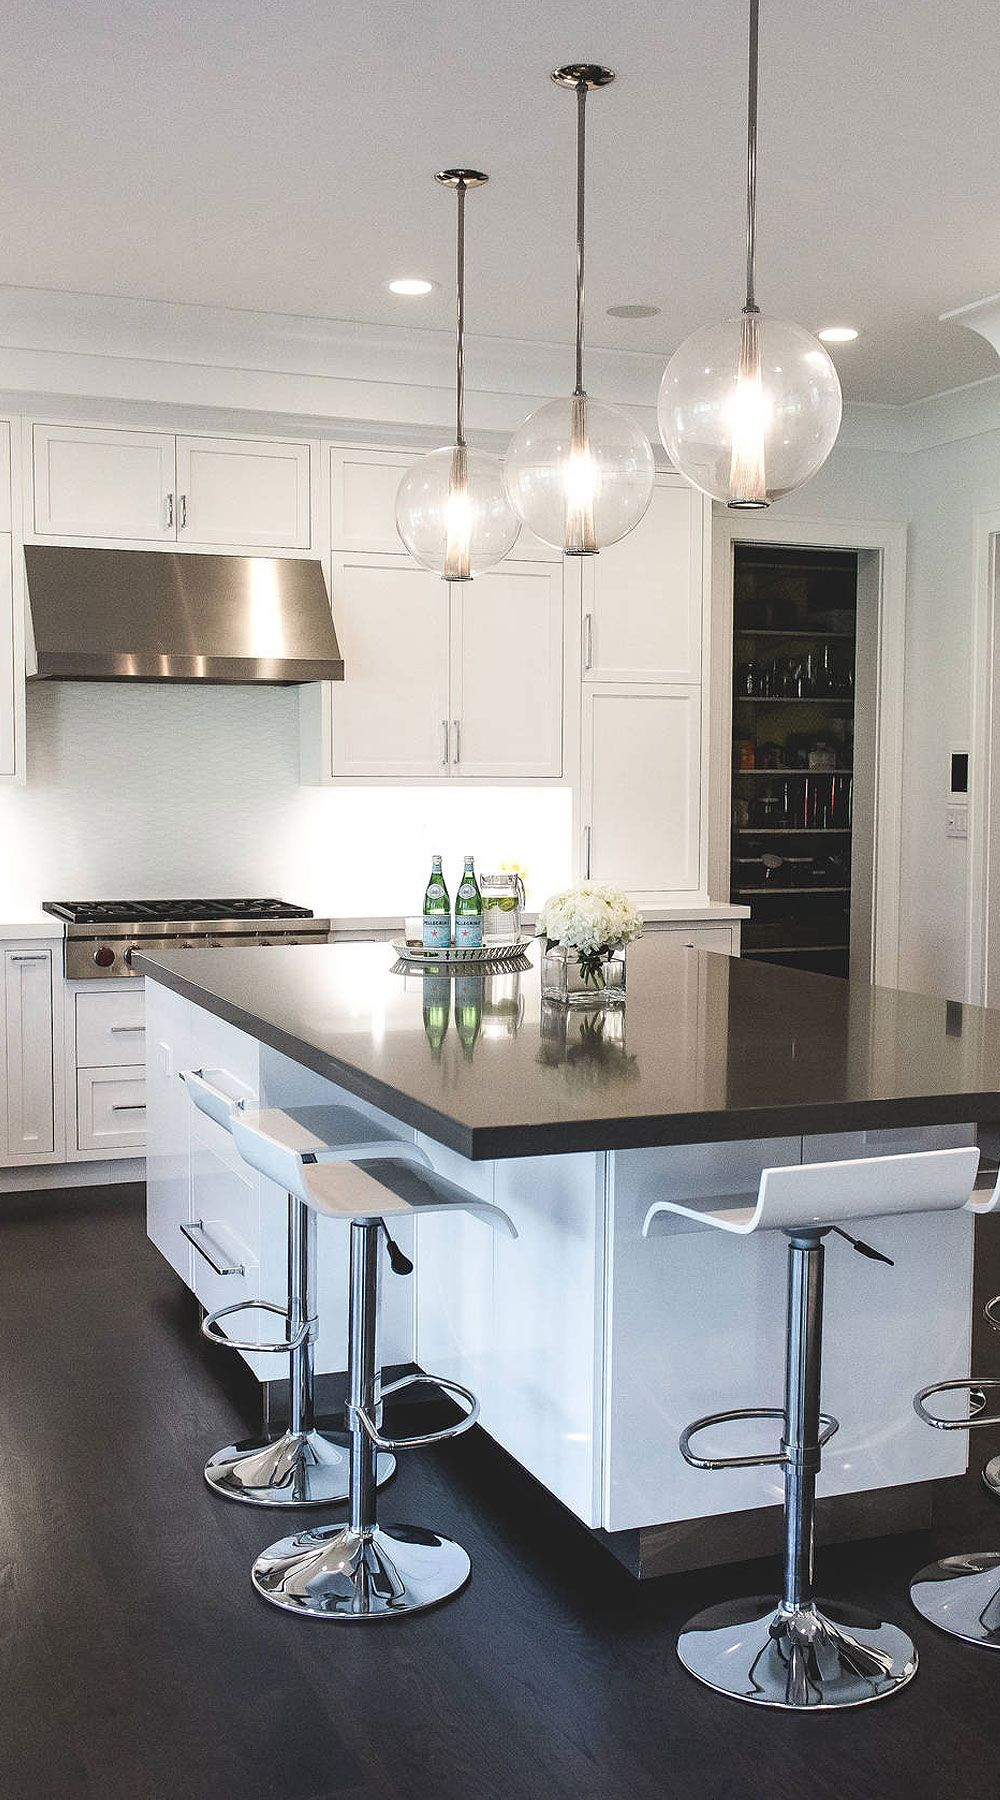 50+ Black Countertop Backsplash Ideas (Tile Designs, Tips ... on Backsplash Ideas For Black Countertops  id=53751